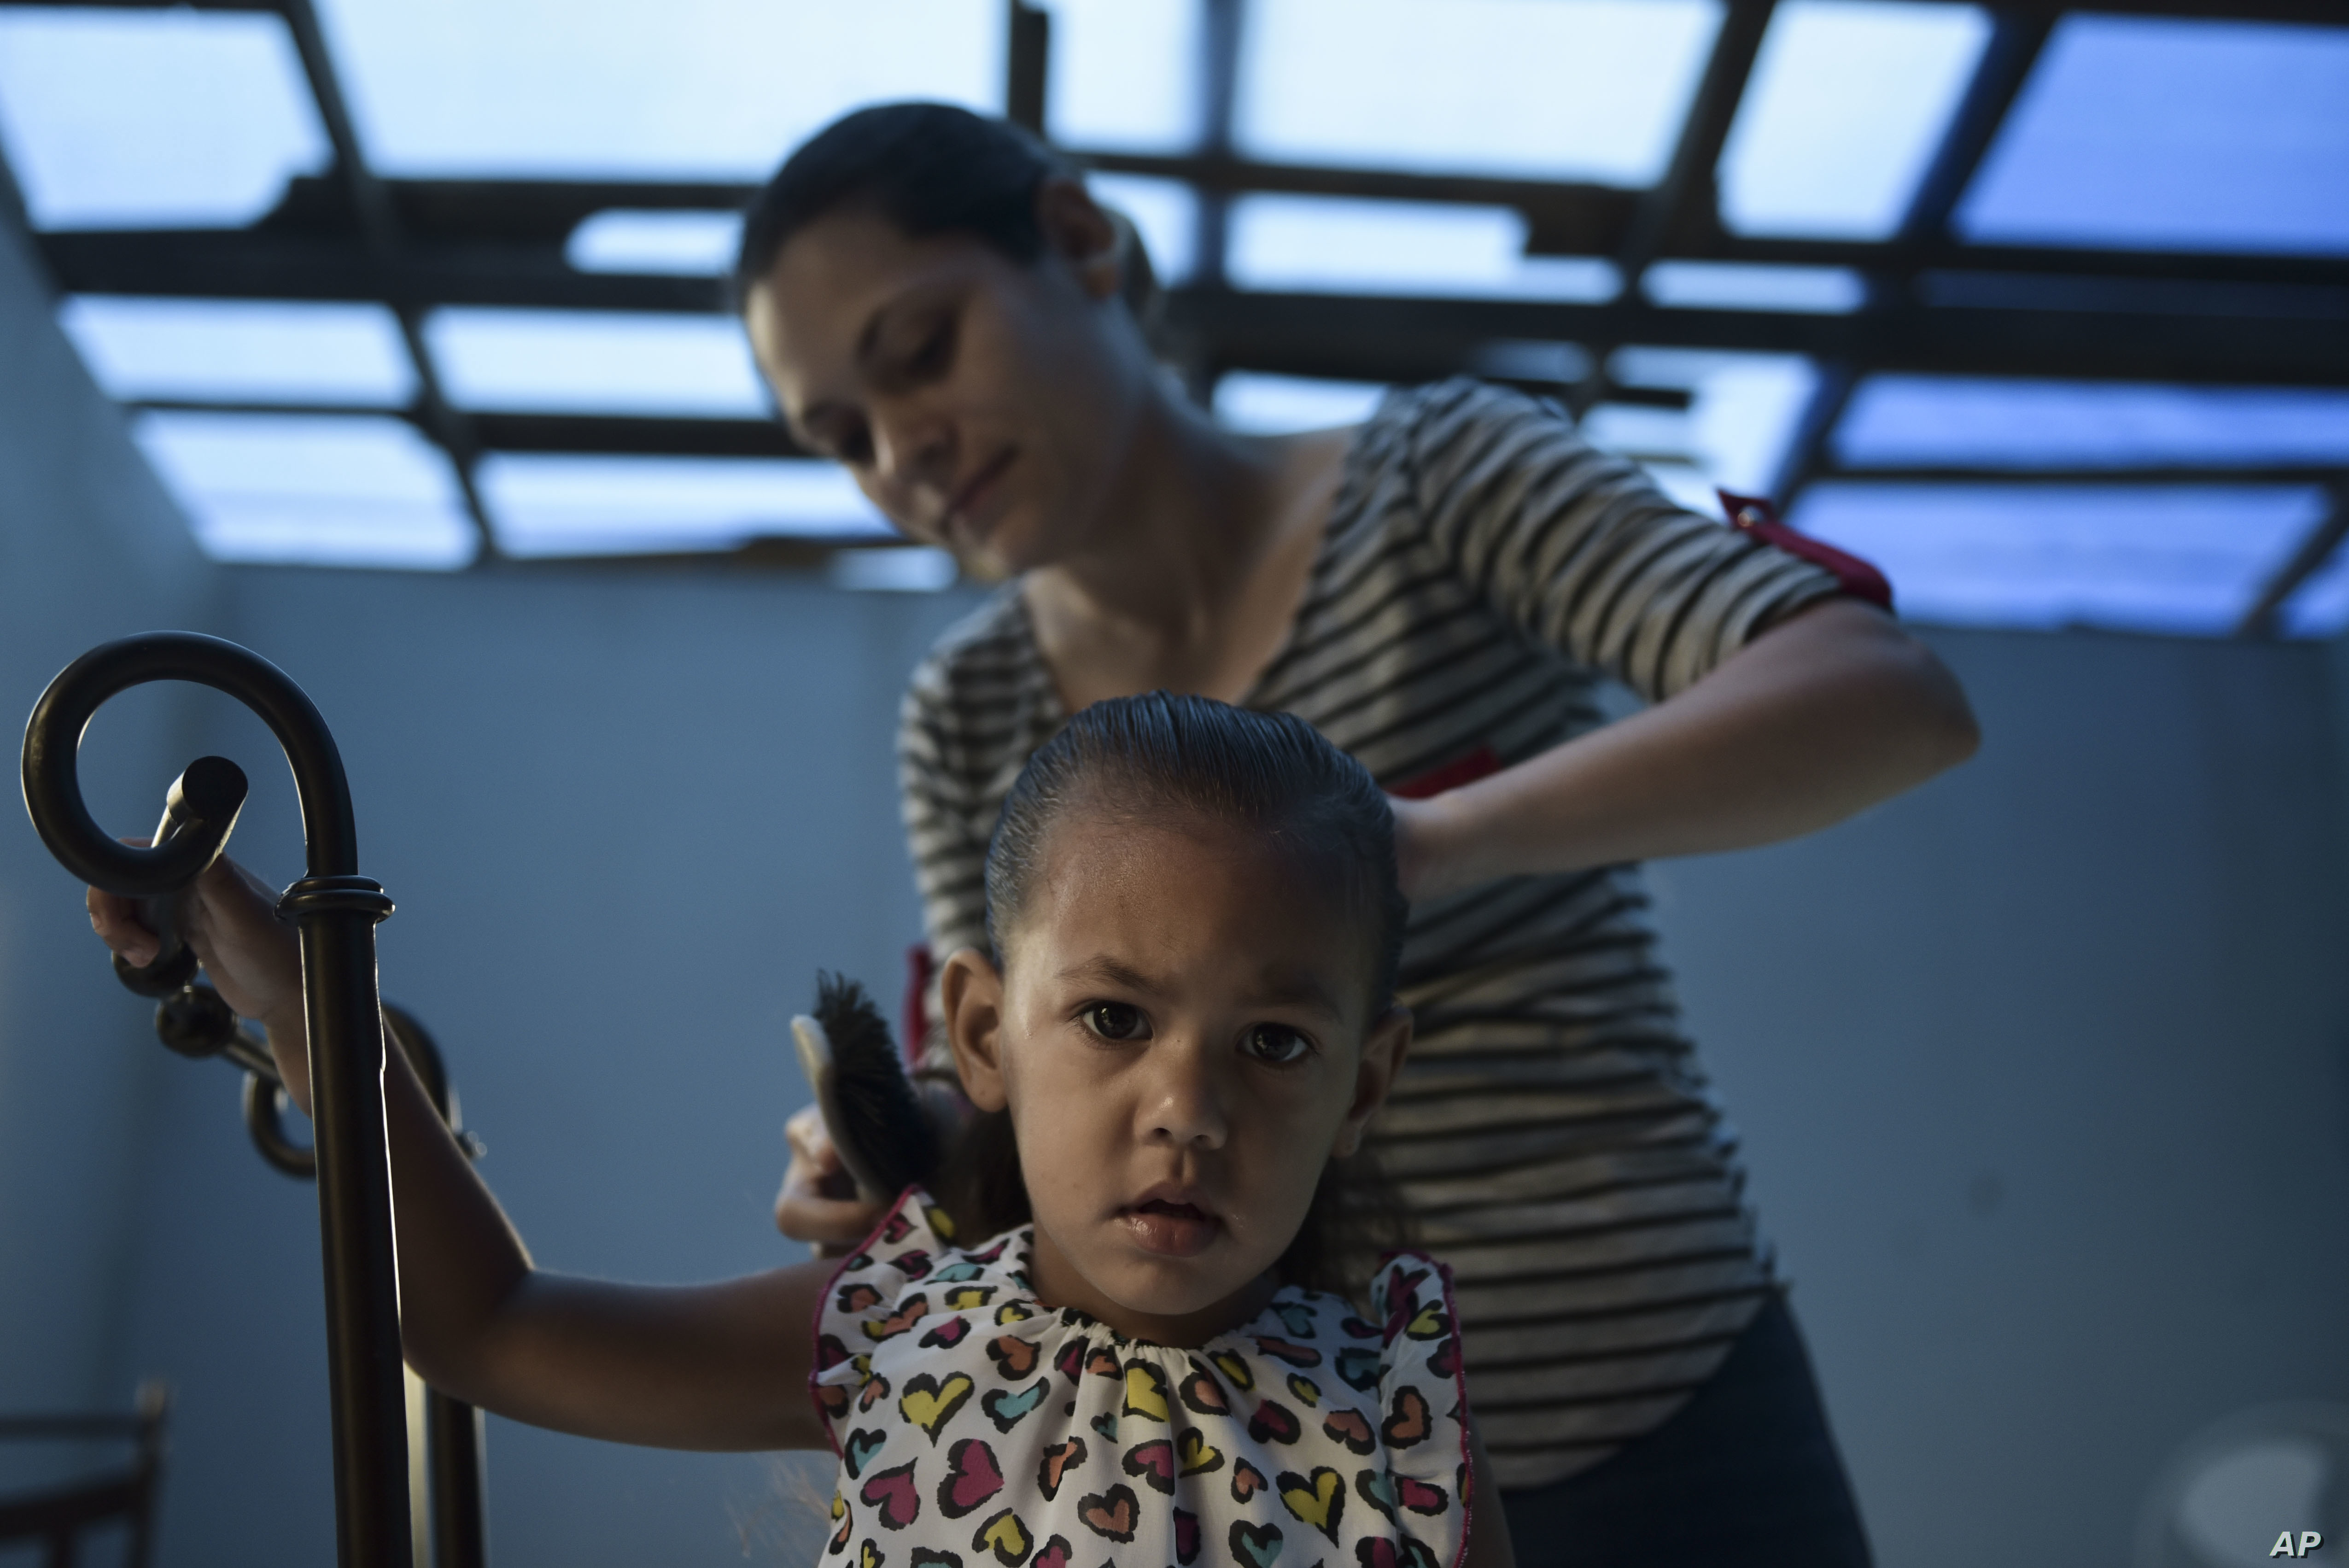 Wilmarie Gonzalez Rivera combs the hair of her 2-year-old daughter, Yeinelis Oliveras Gonzalez, in Morovis, Puerto Rico, Dec. 22, 2017. The roof of their home is now a blue tarp and some recycled zinc pieces, after the passage of Hurricane Maria.